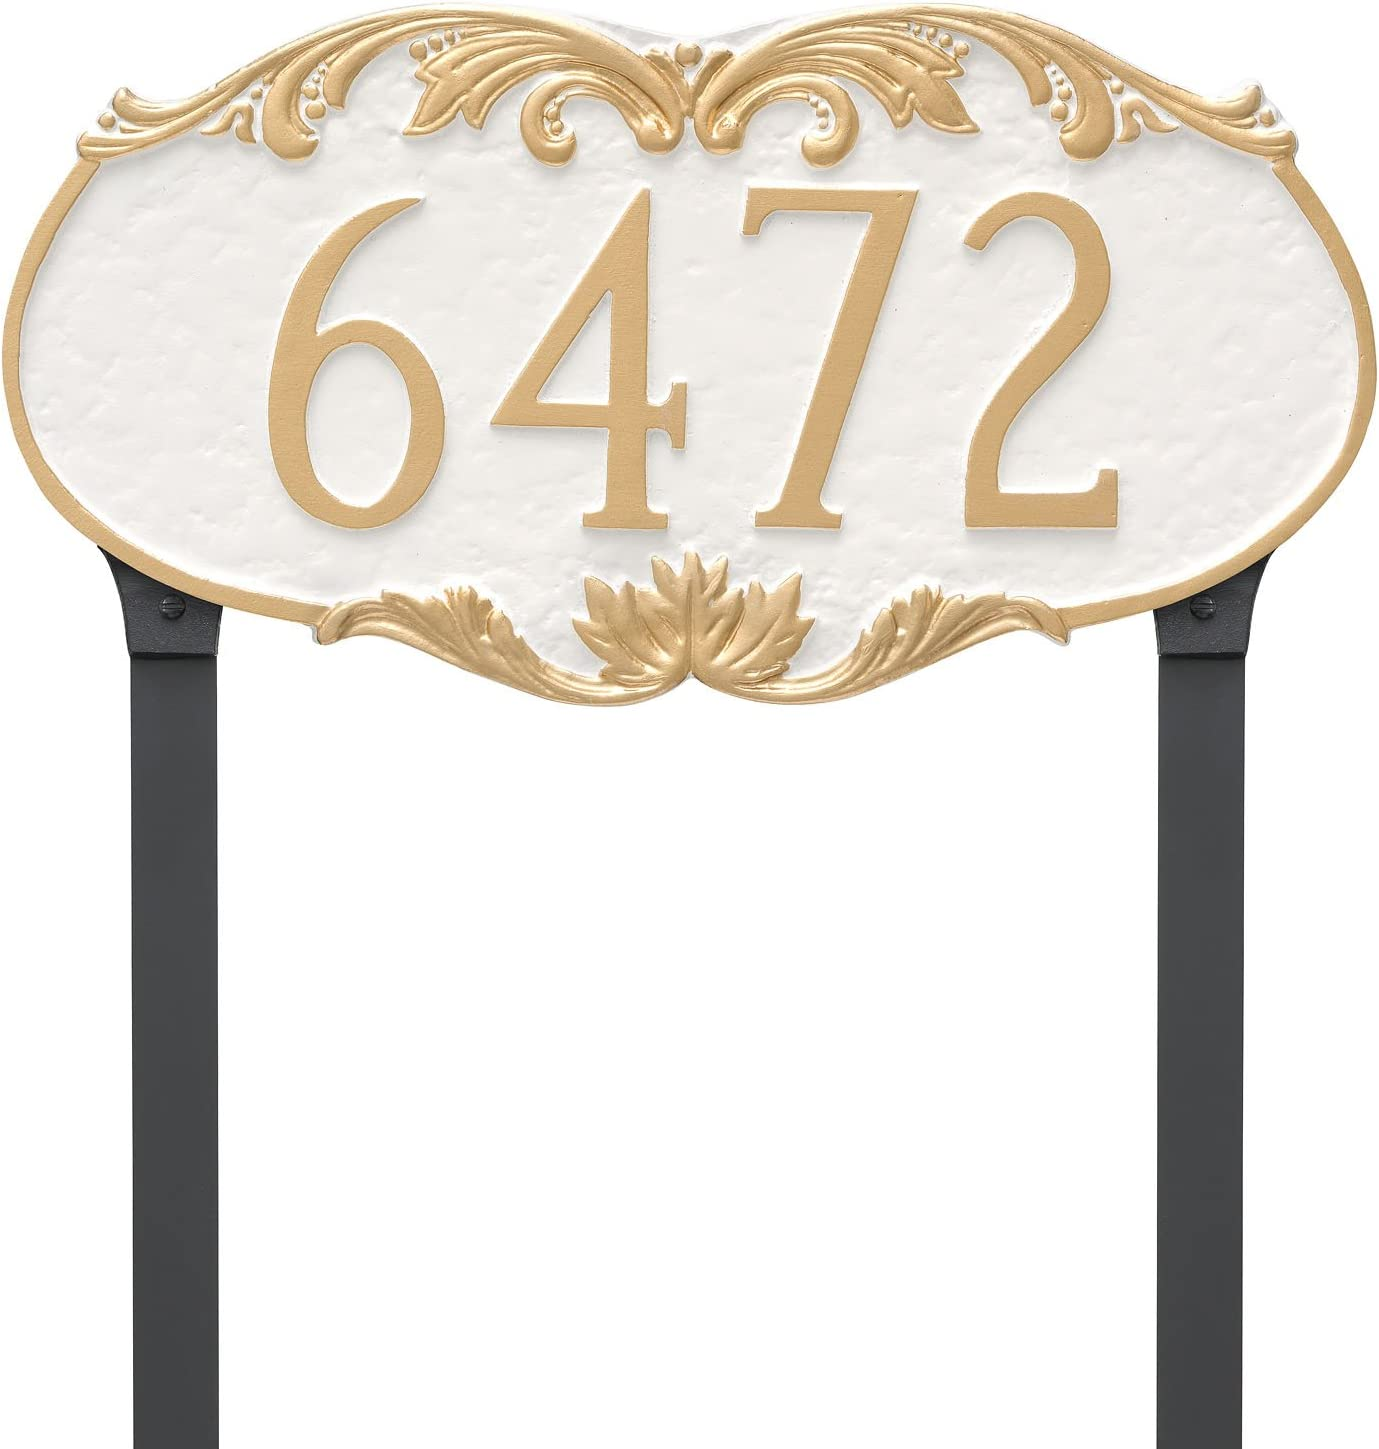 Montague Metal Ranking Max 44% OFF TOP4 Charleston Address Sign Plaque Stakes Lawn with